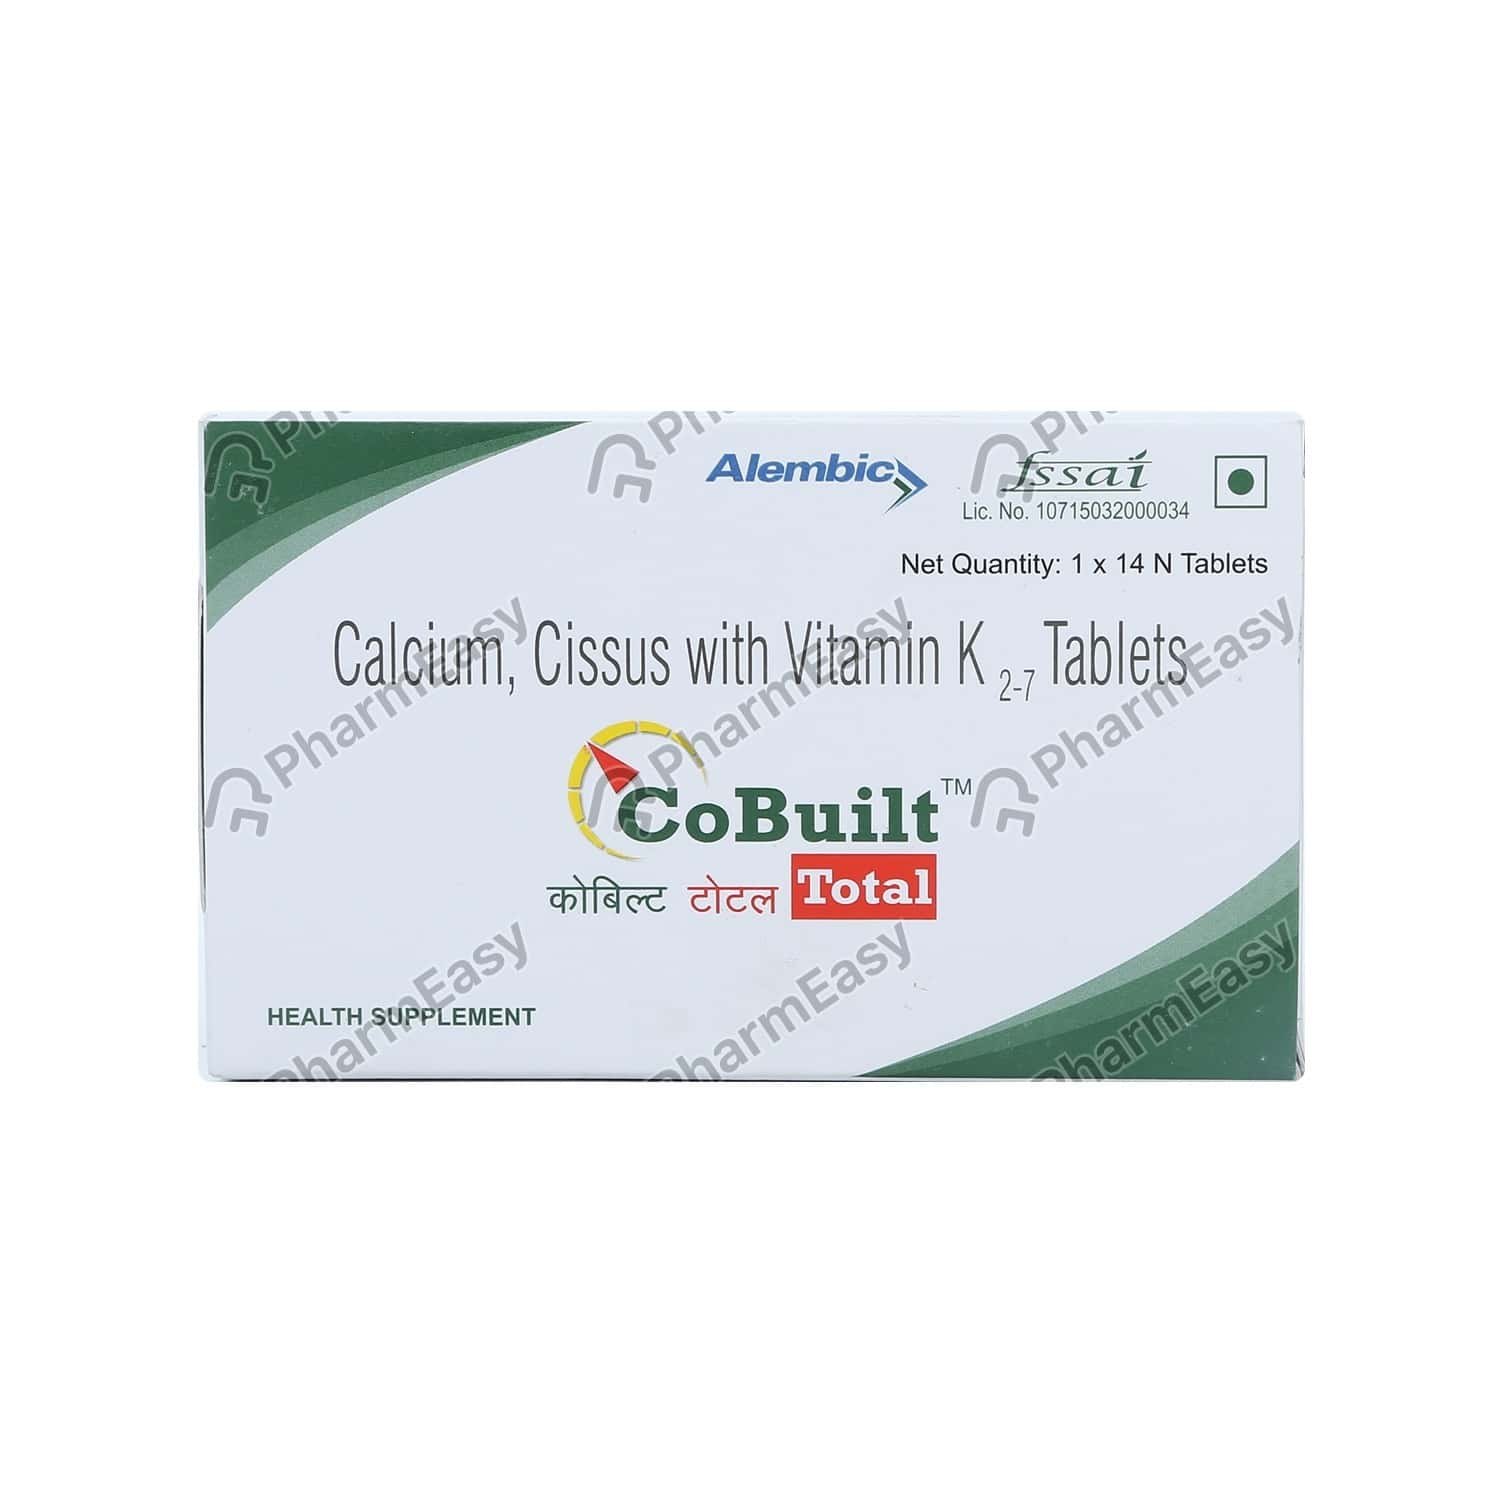 Cobuilt Total Strip Of 14 Tablets